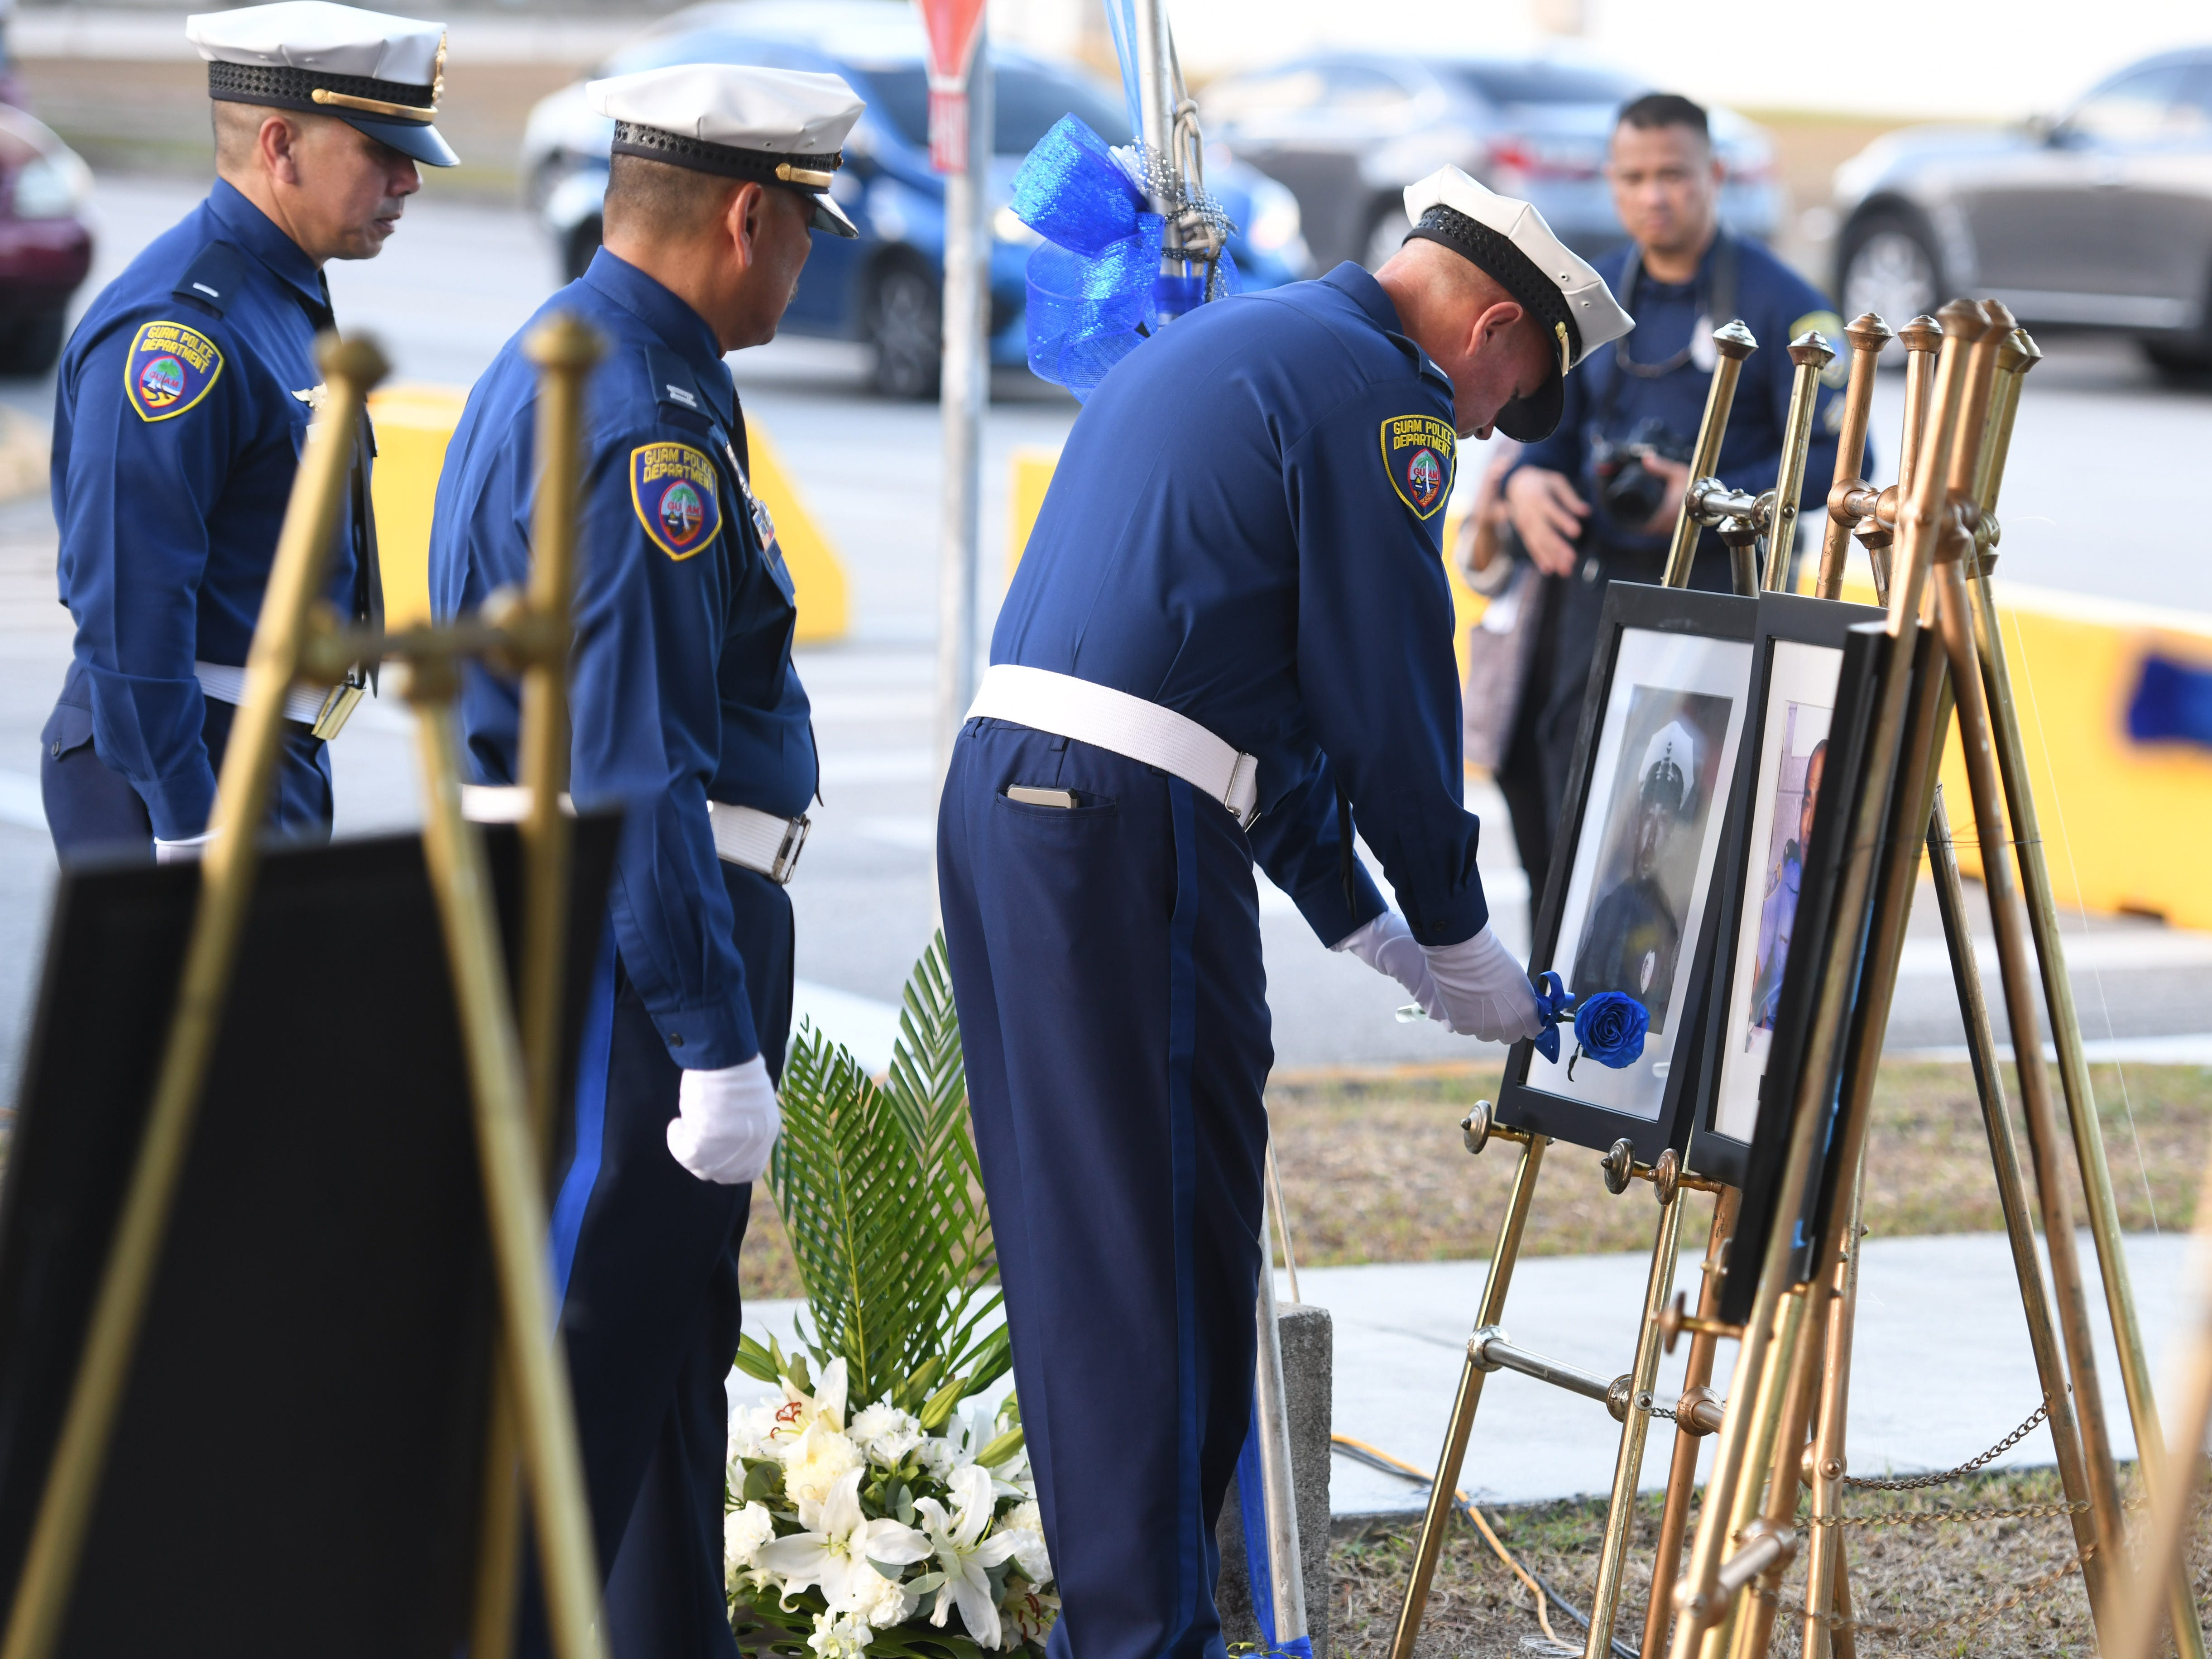 The service of Police Officer Manuel Aquino is remembered during the Peace Officers' Memorial Service and Wreath Laying Ceremony held at the Guam Police Department's Badge Memorial Park in Hagåtña on Wednesday, May 15, 2019.